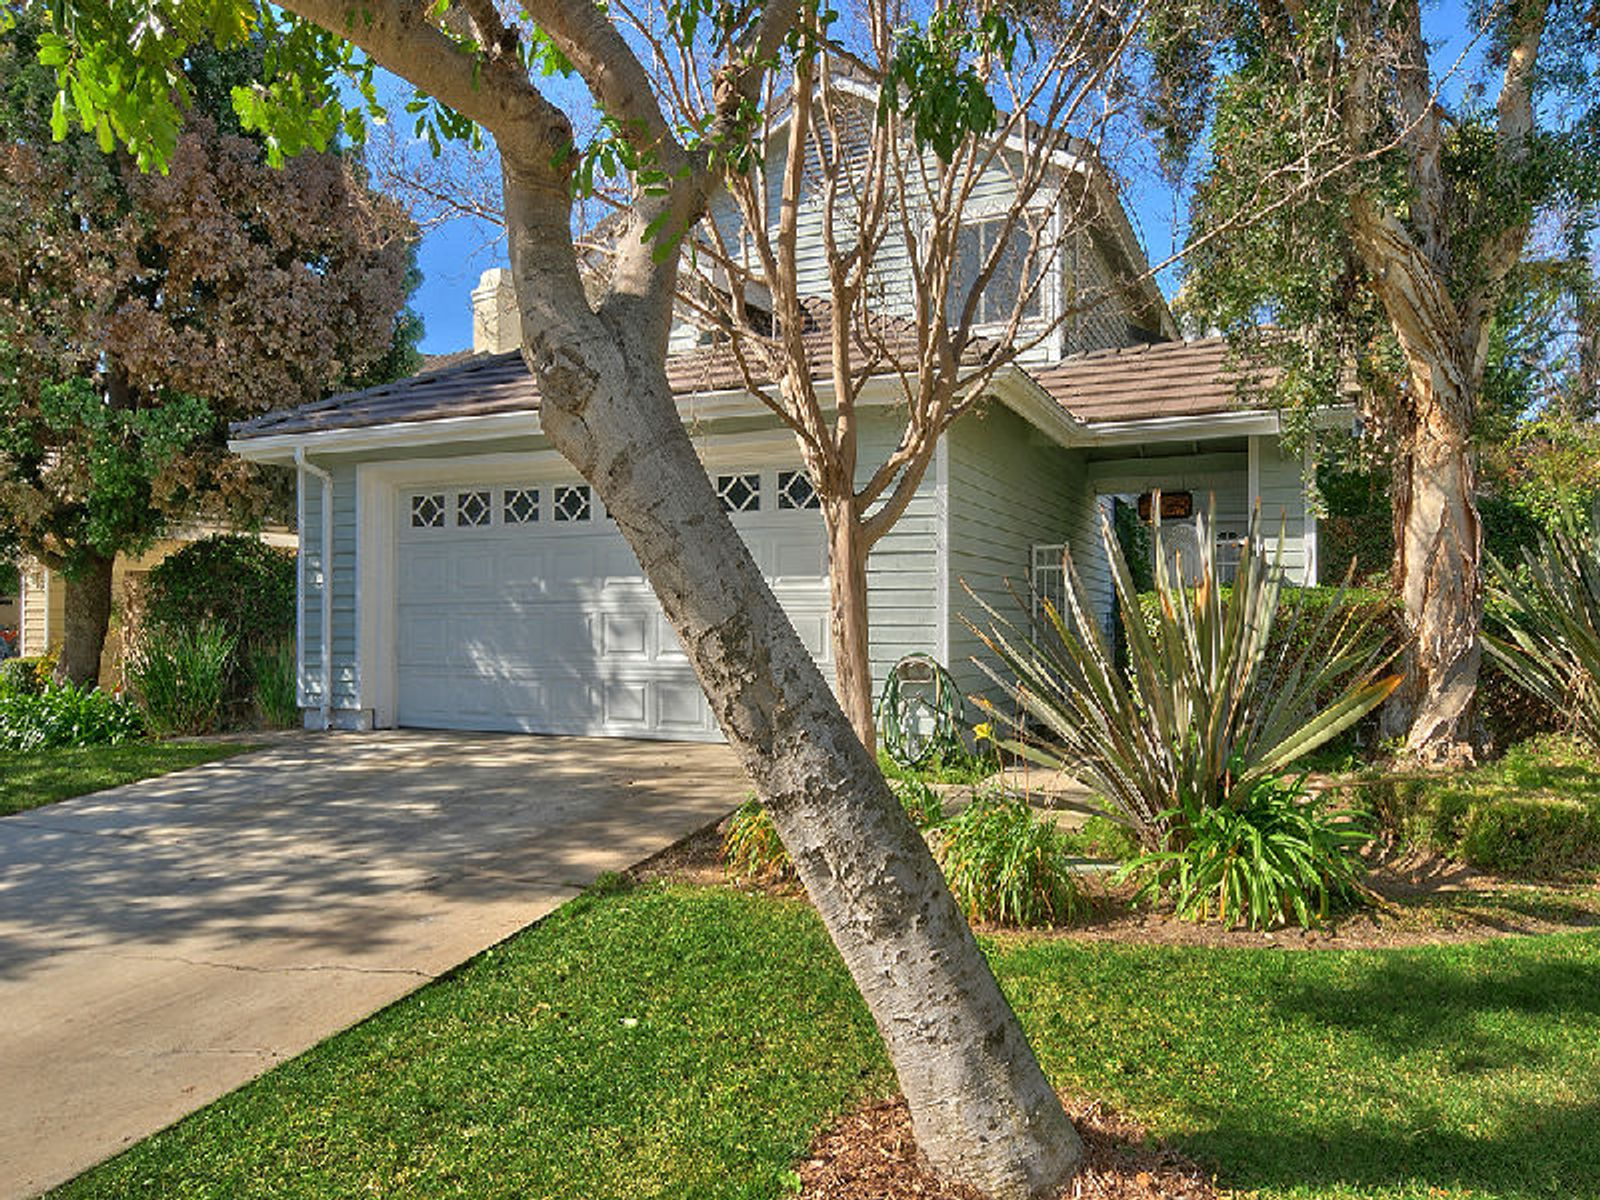 12562 Sunnyglen Drive, Moorpark CA Single Family Home - Los Angeles Real Estate